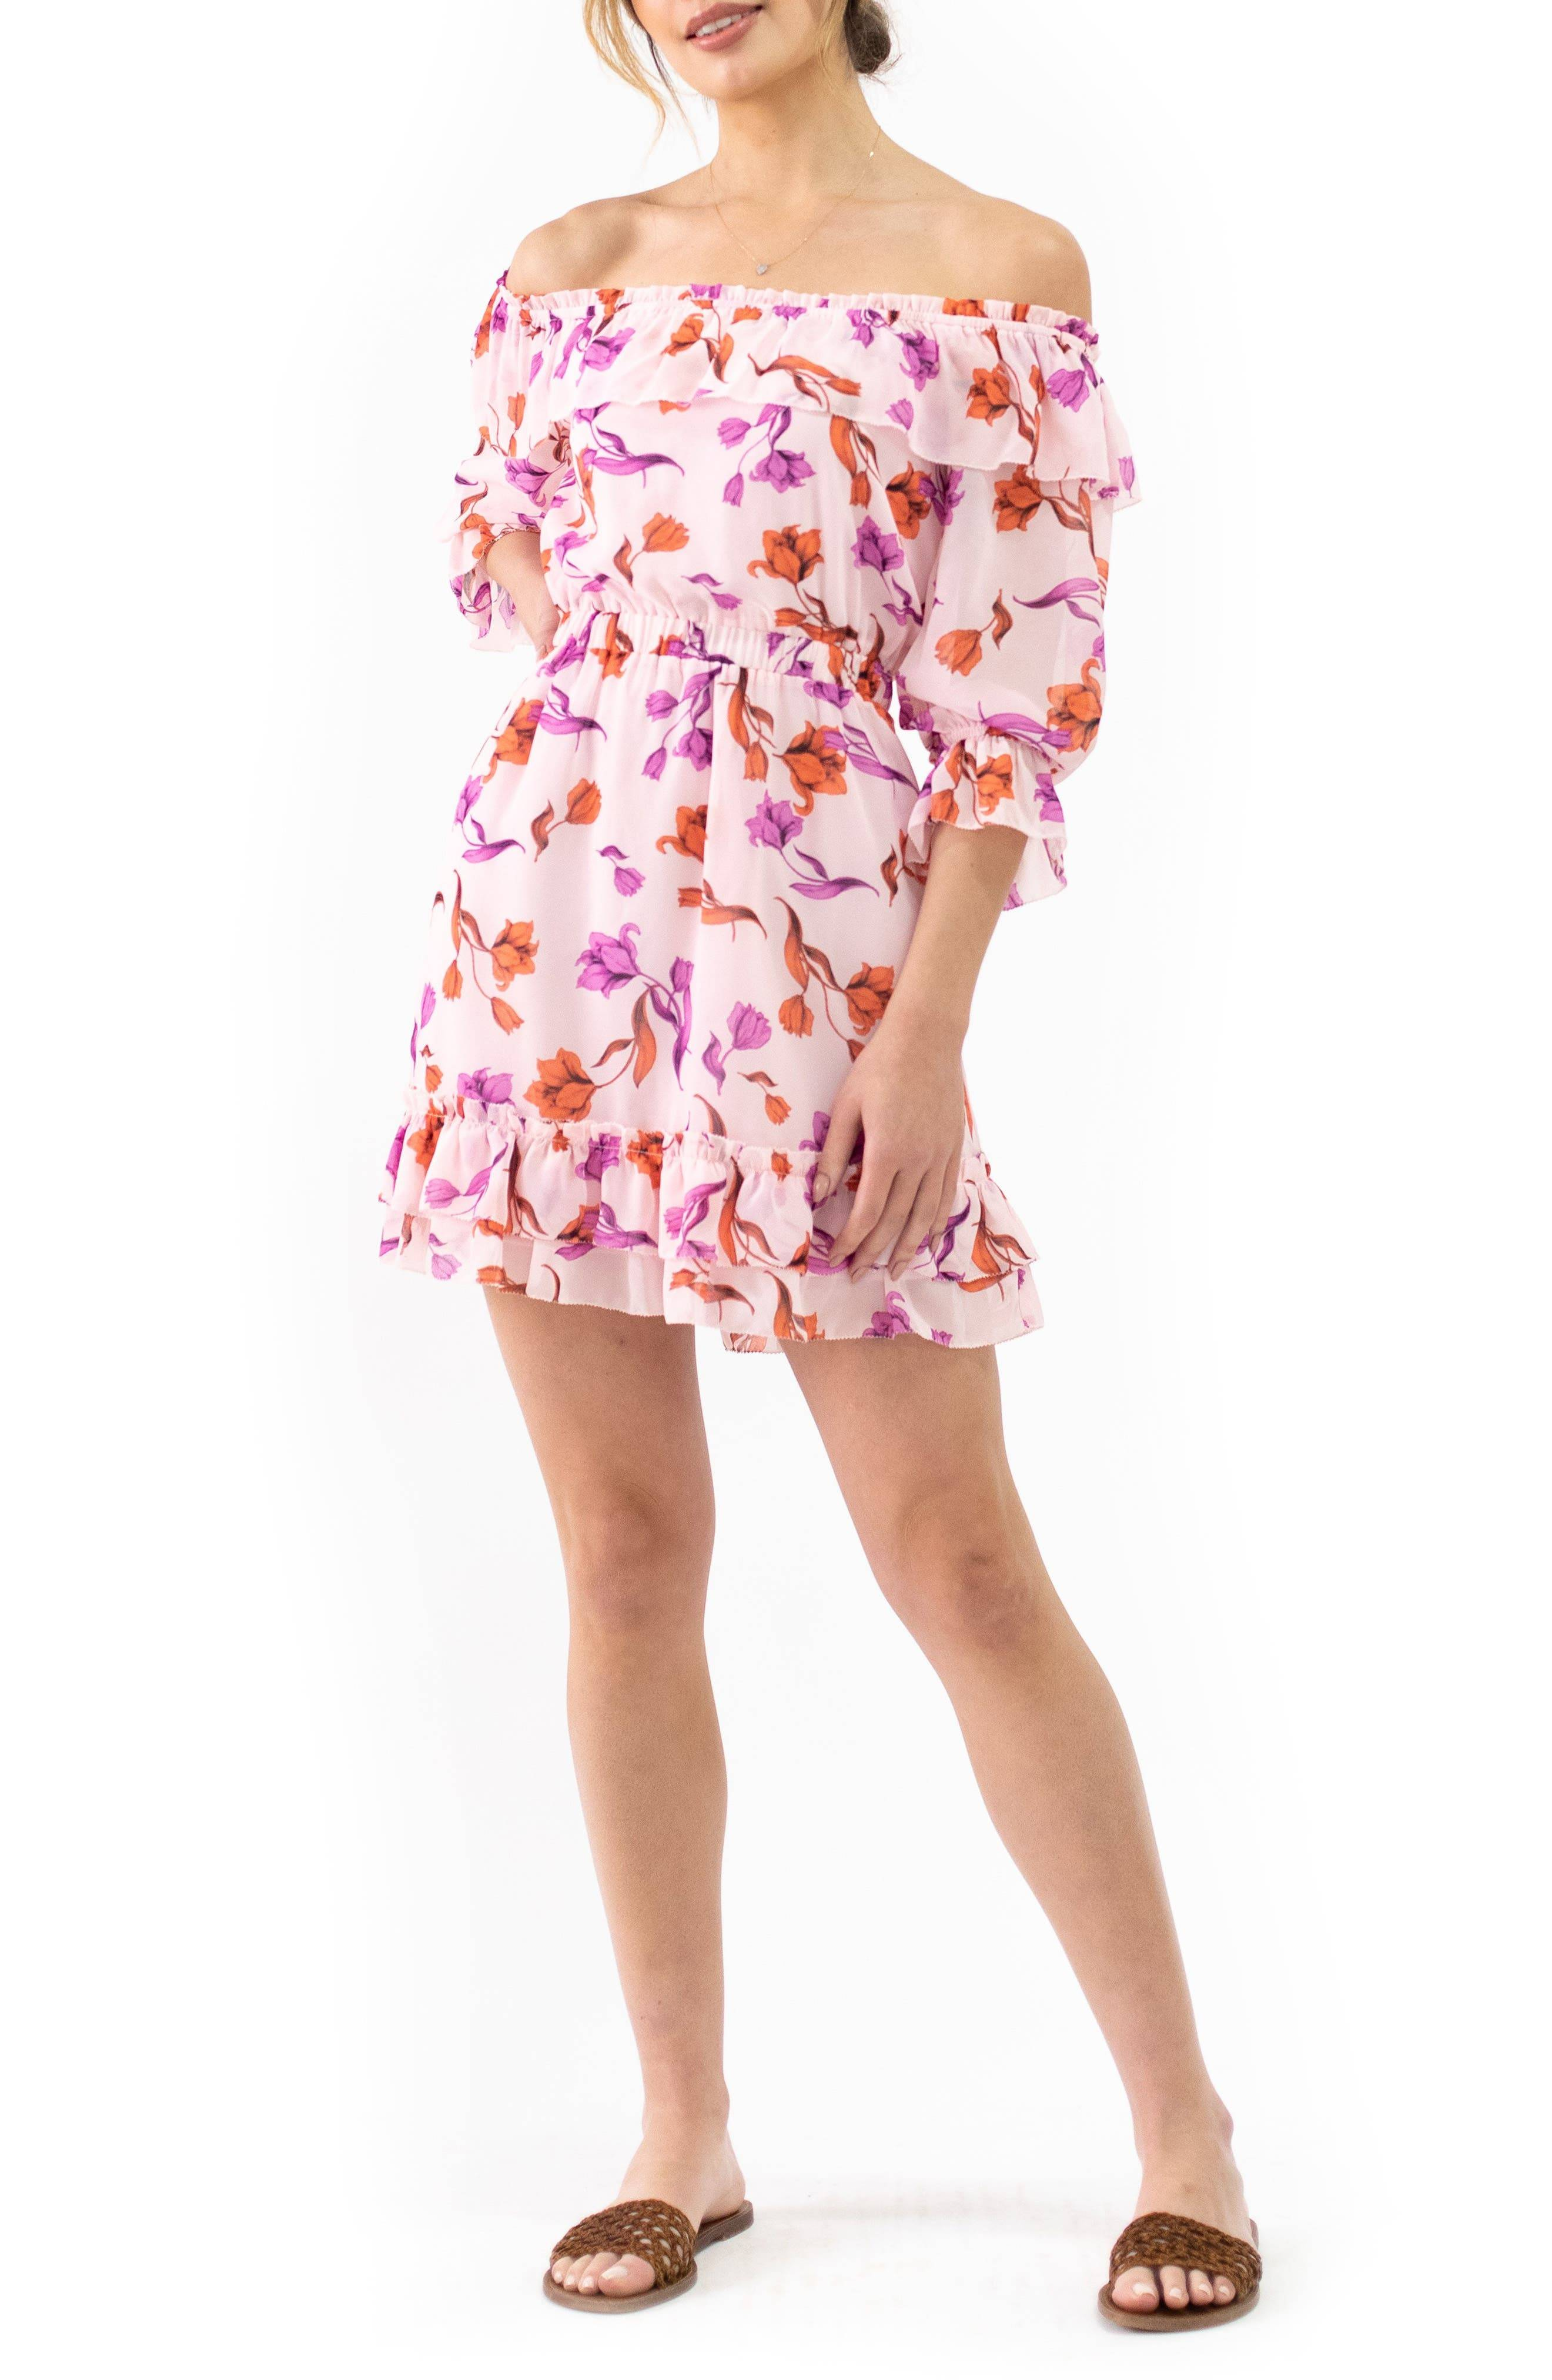 Lost + Wander Women's Lost + Wander Garden Of Delight Off The Shoulder Minidress, Size X-Small - Pink